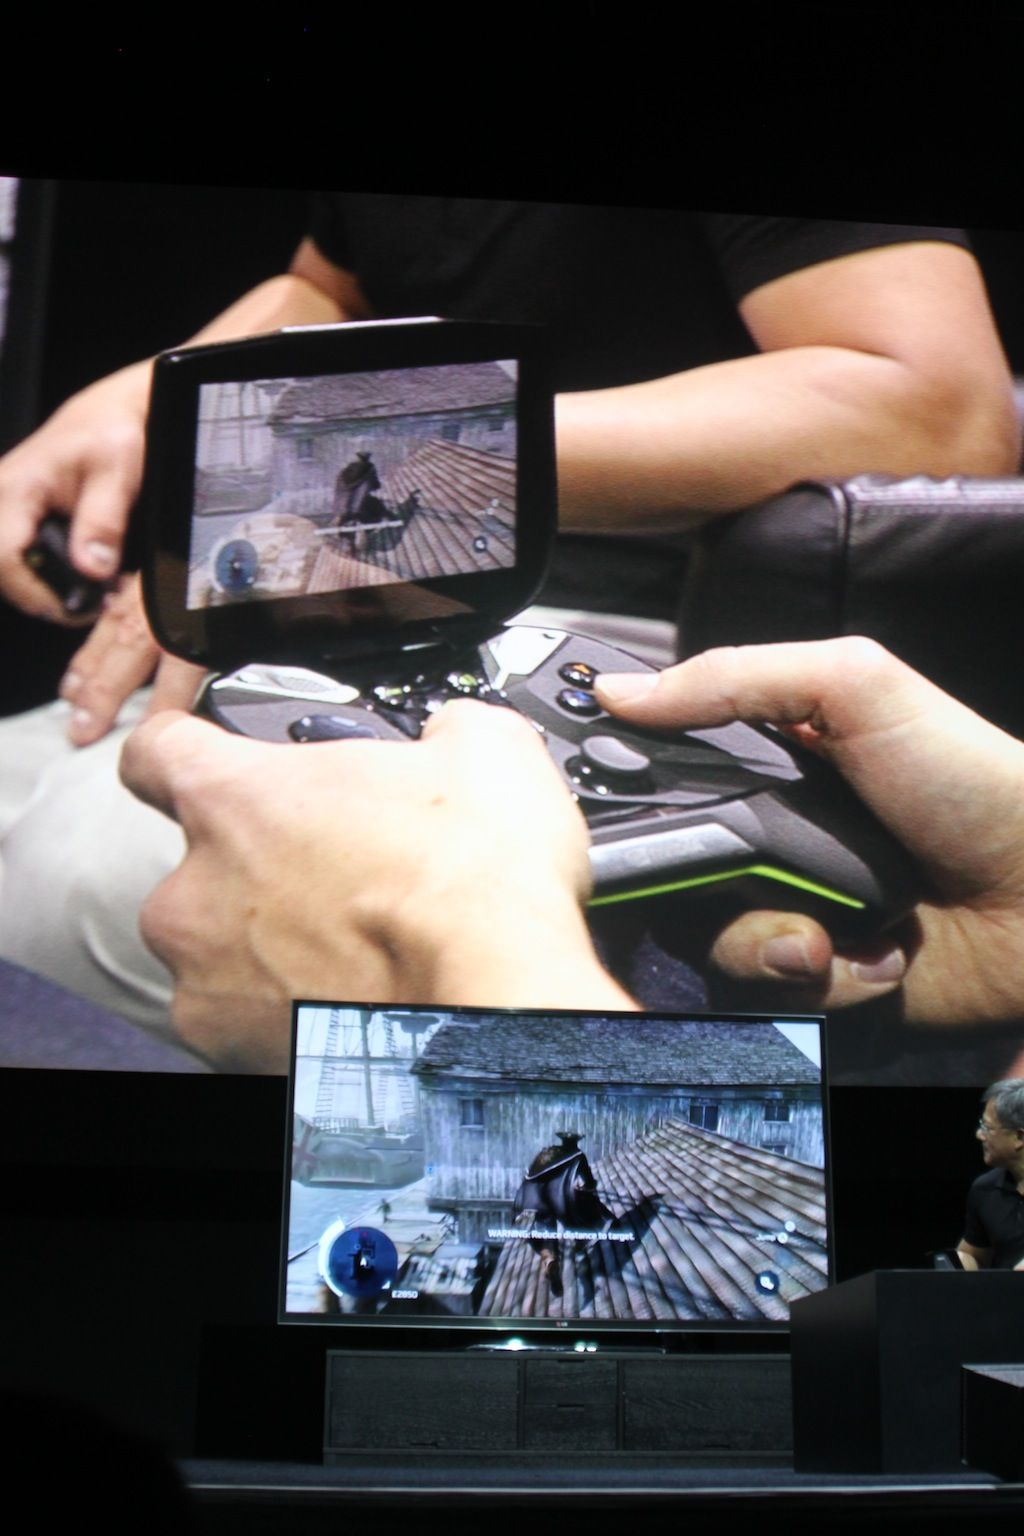 Nvidia dives into the portable console market with